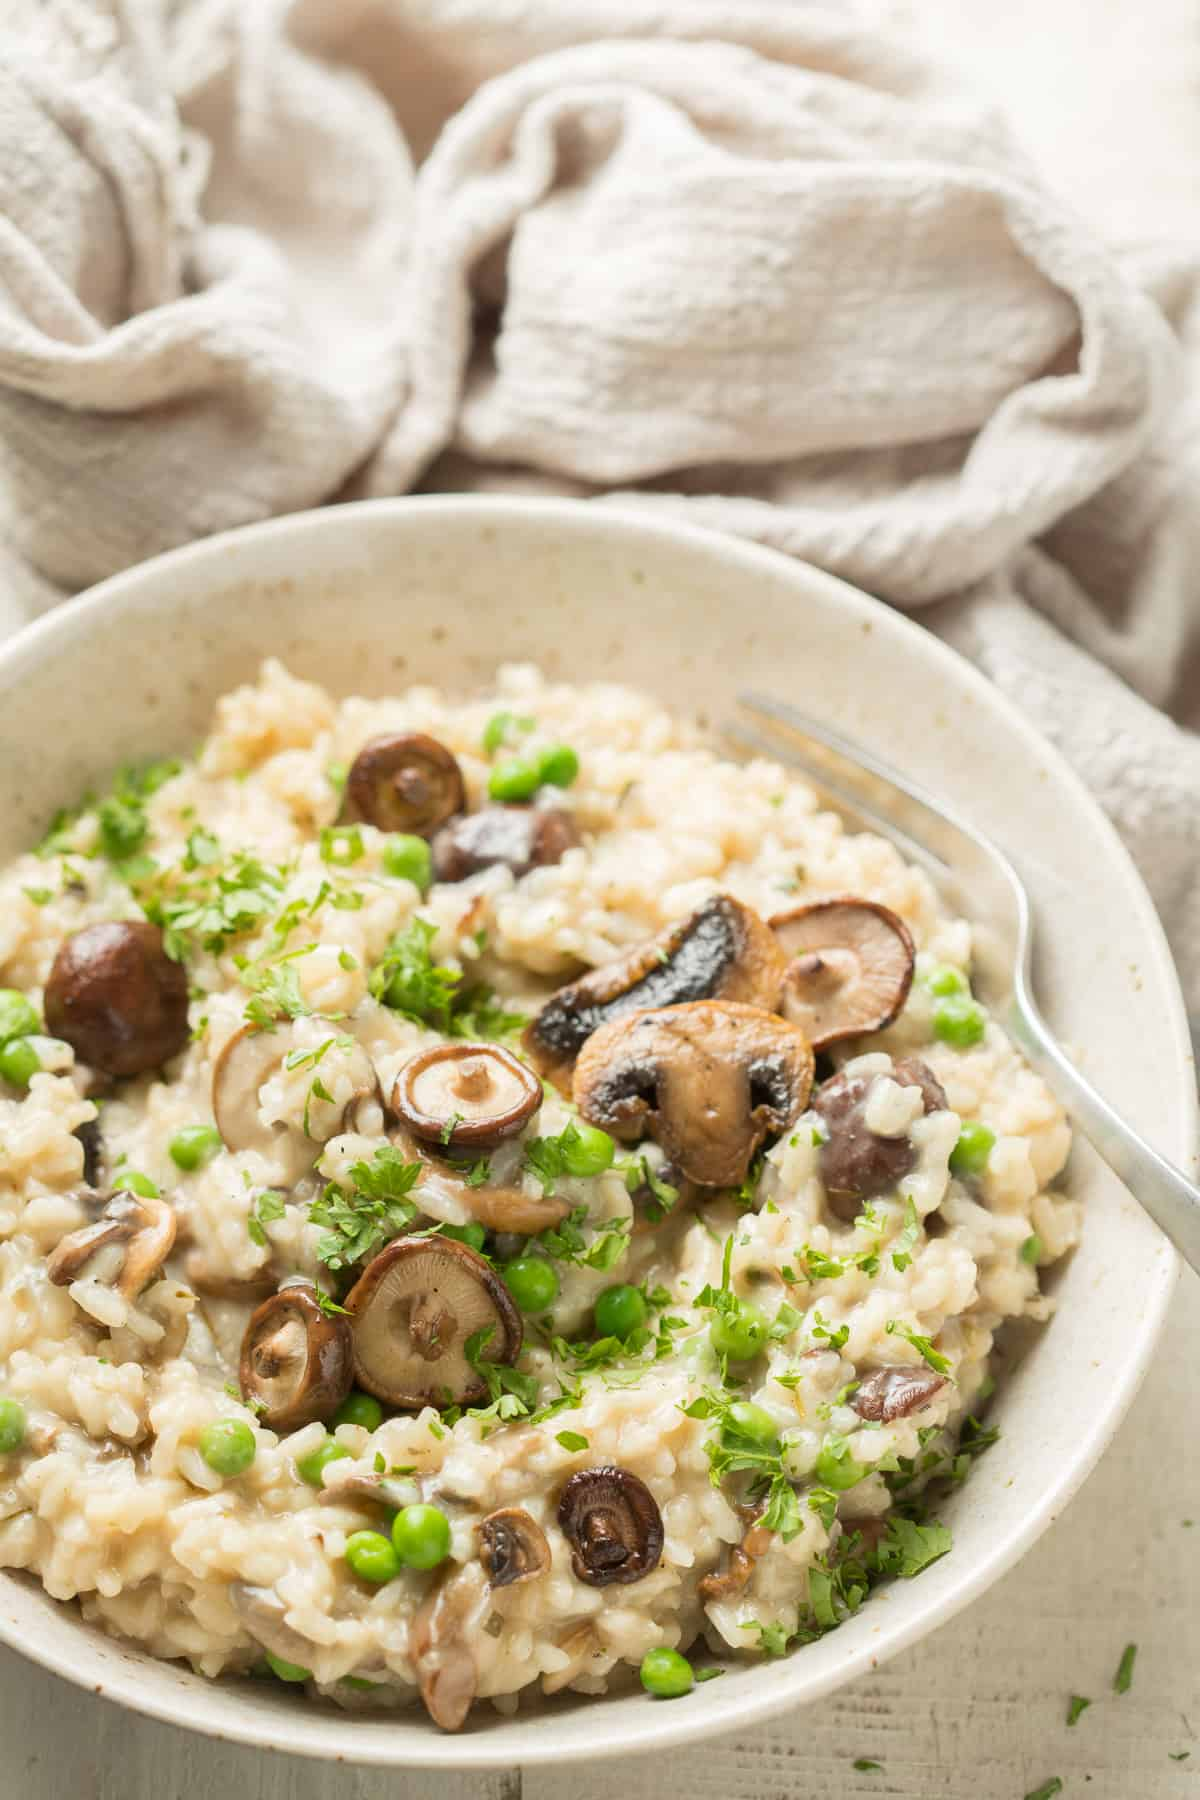 Bowl of Vegan Mushroom Risotto with fork.